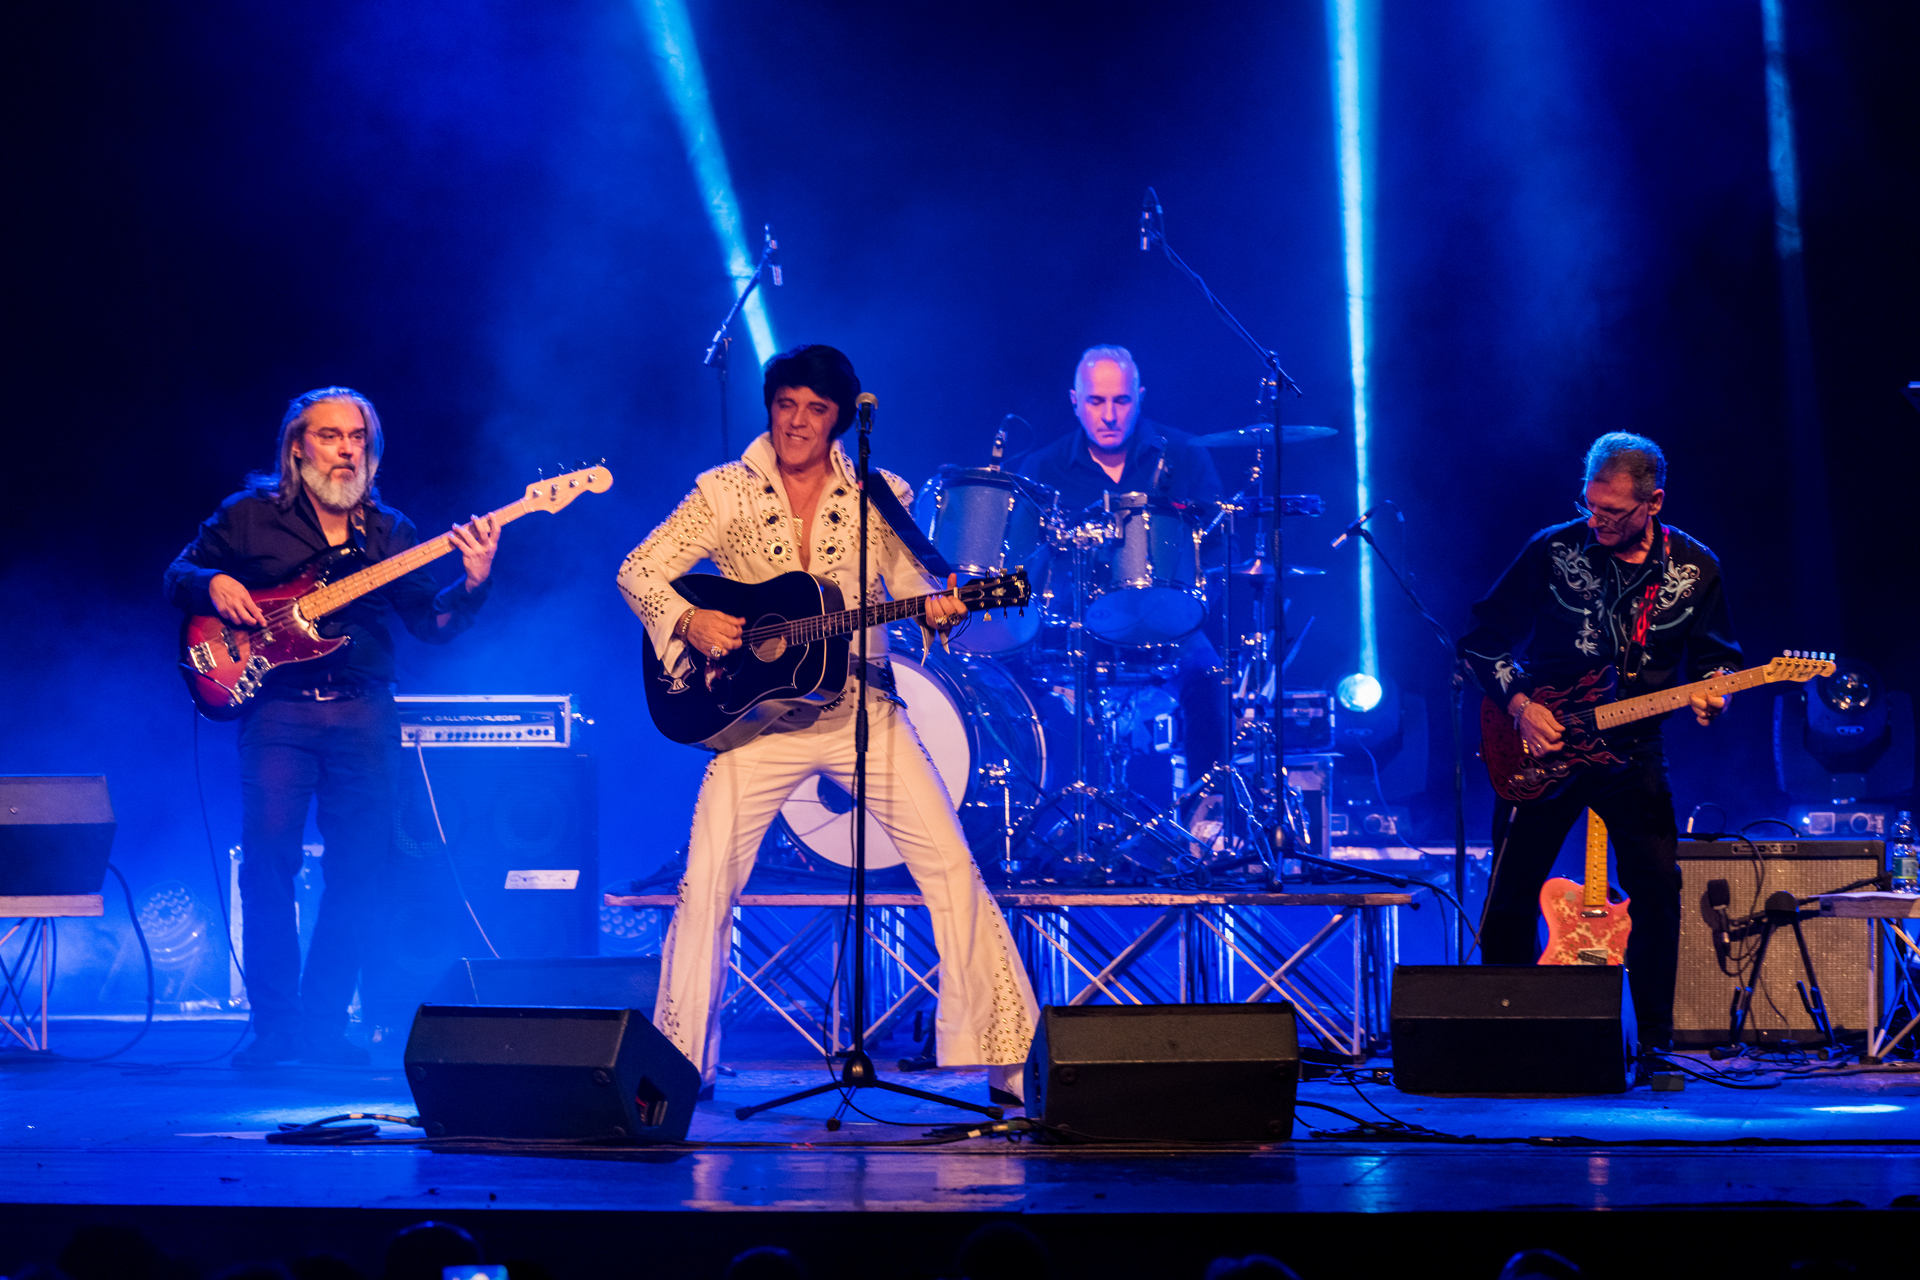 2020_01_14-we4show-Elvis-©-Luca-Vantusso-211143-GFXS2030